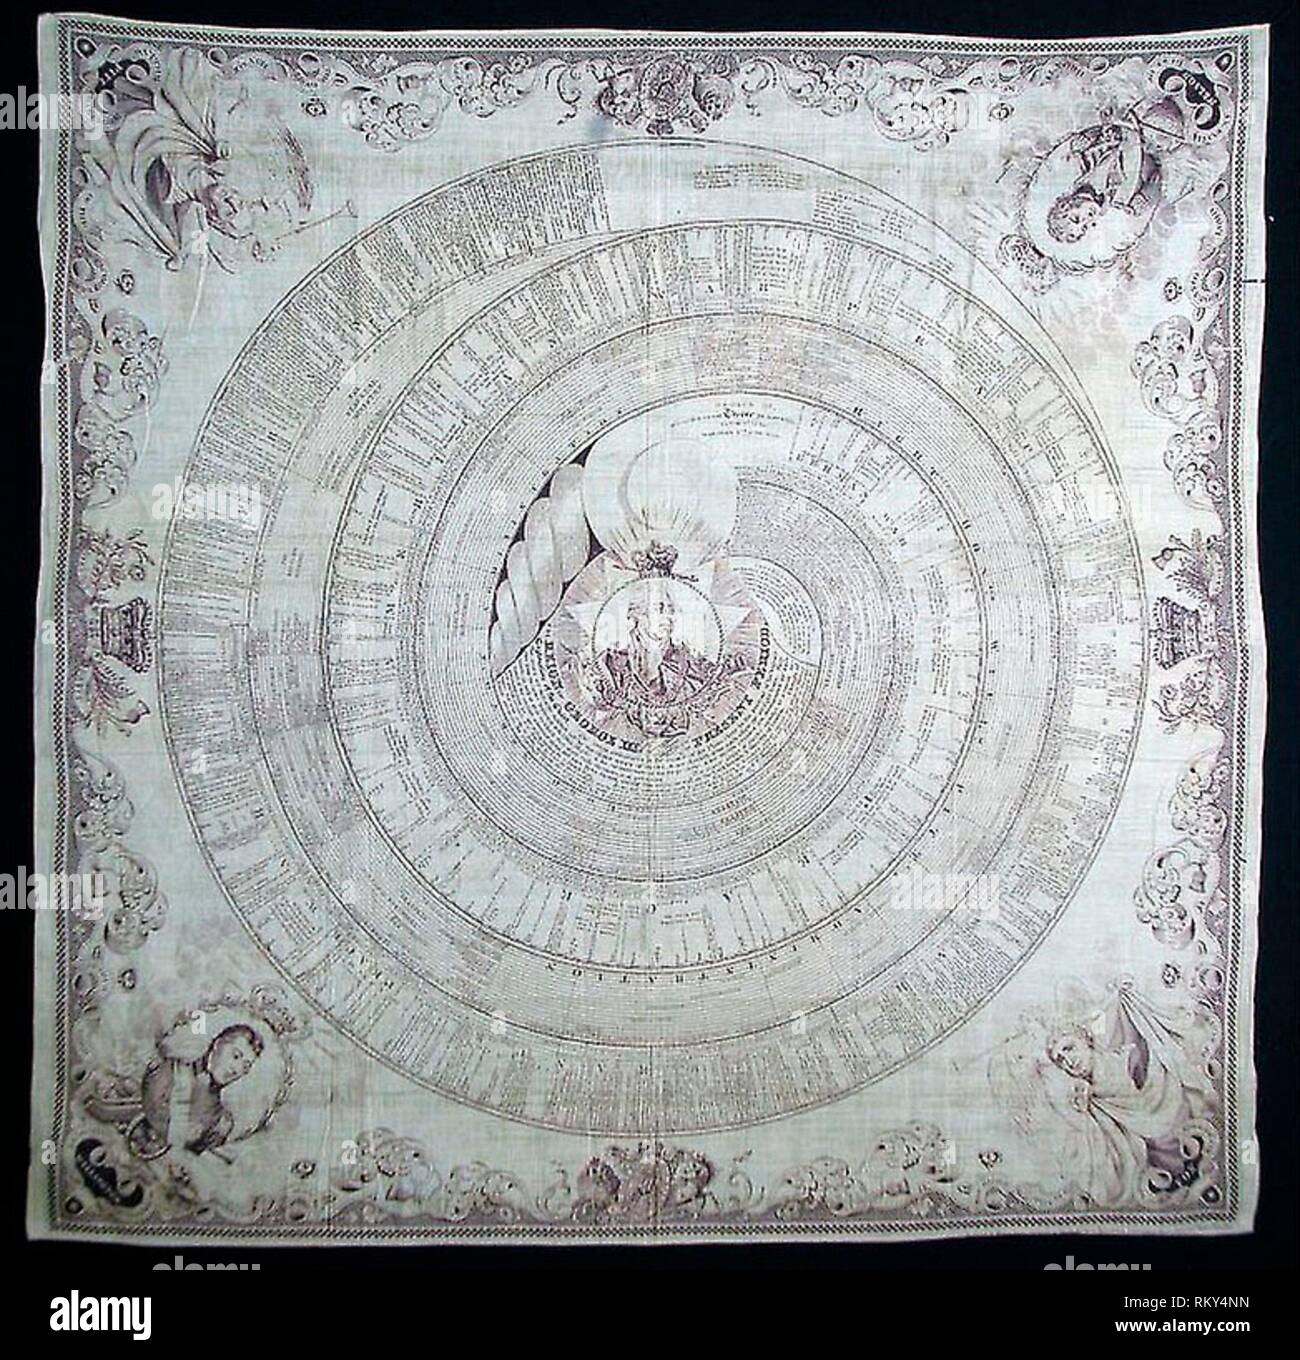 Handkerchief - 1812 - Engraved by Rymer and Son (English, active c. 1812) England, London - Artist: Rymer and Son, Origin: London, Date: 1812, - Stock Image